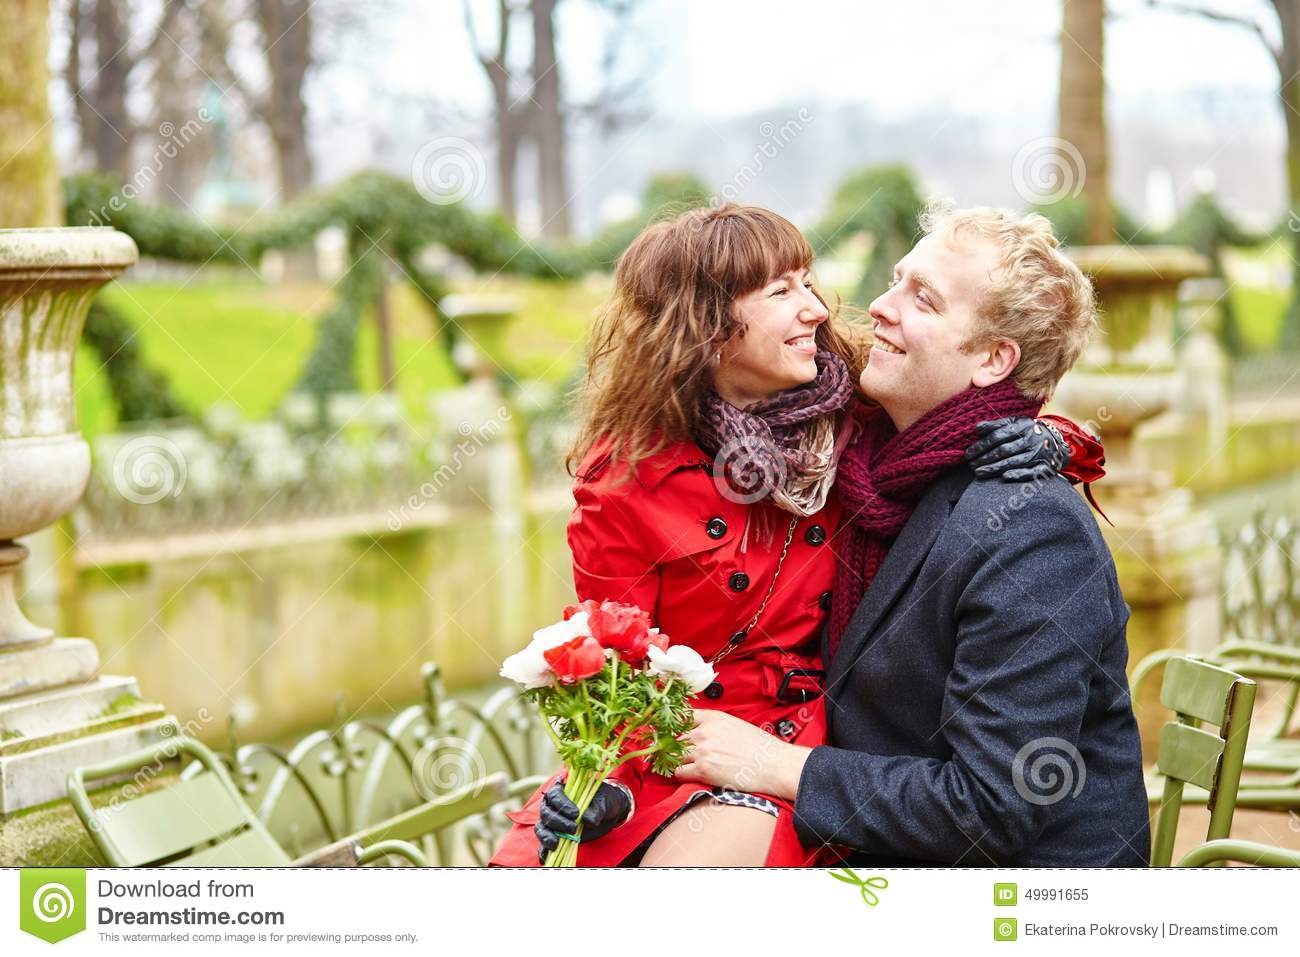 spring park buddhist personals Meet jewish singles in your area for dating and romance @ jdatecom - the most popular online jewish dating community.